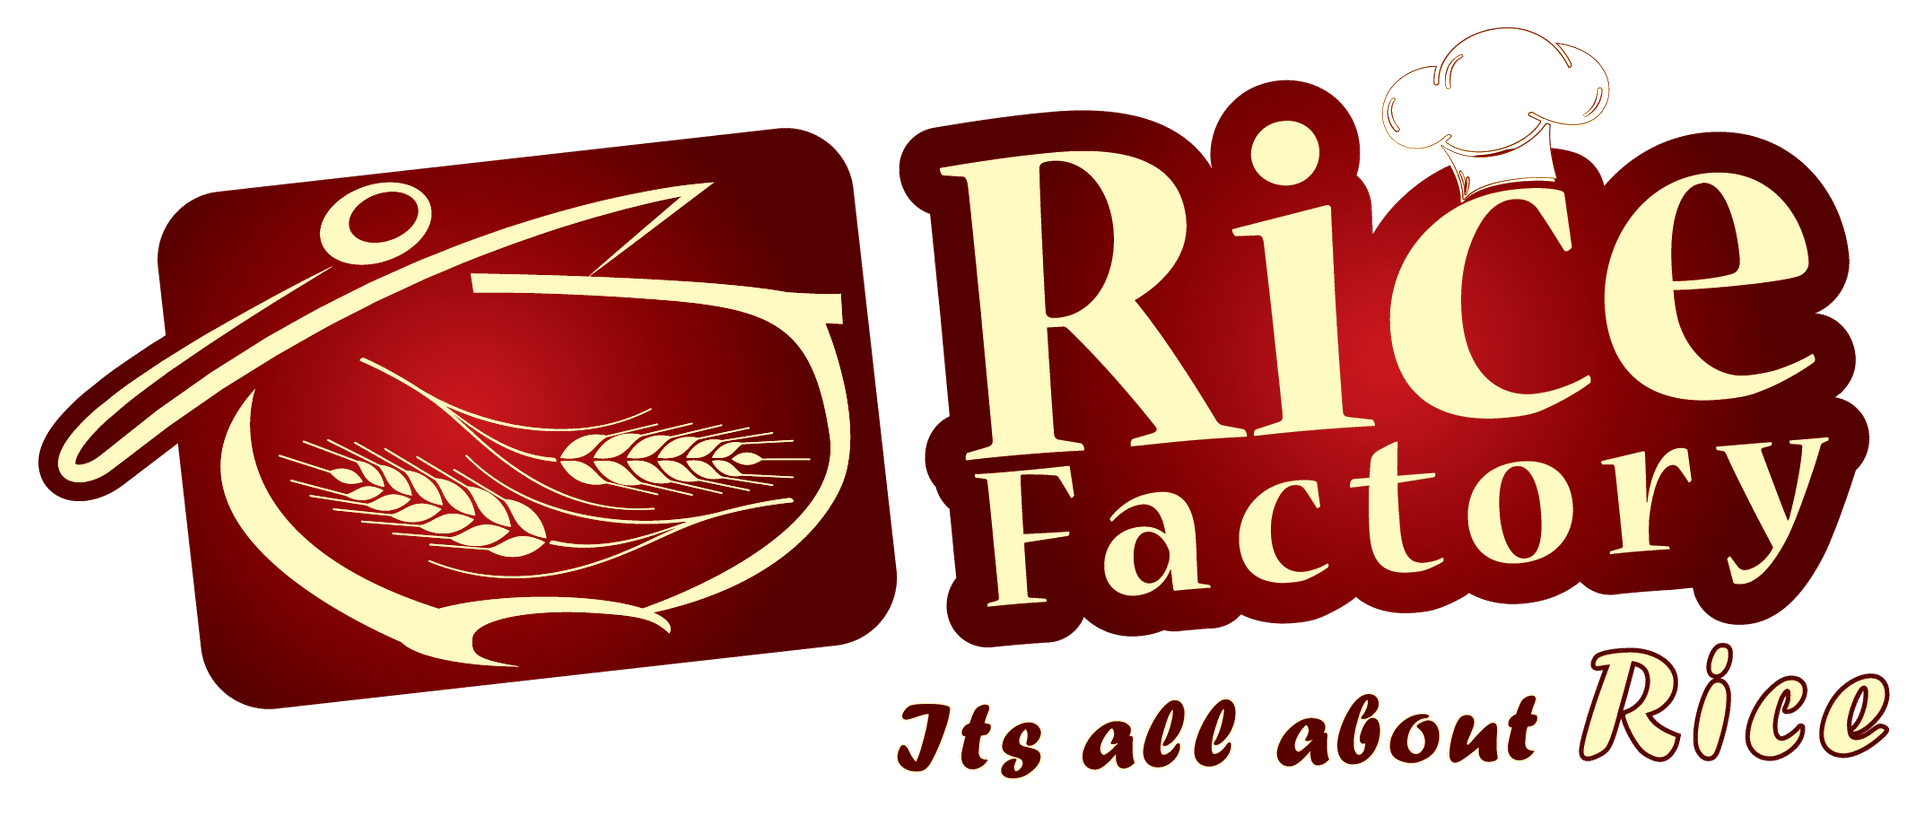 Rice Factory  image